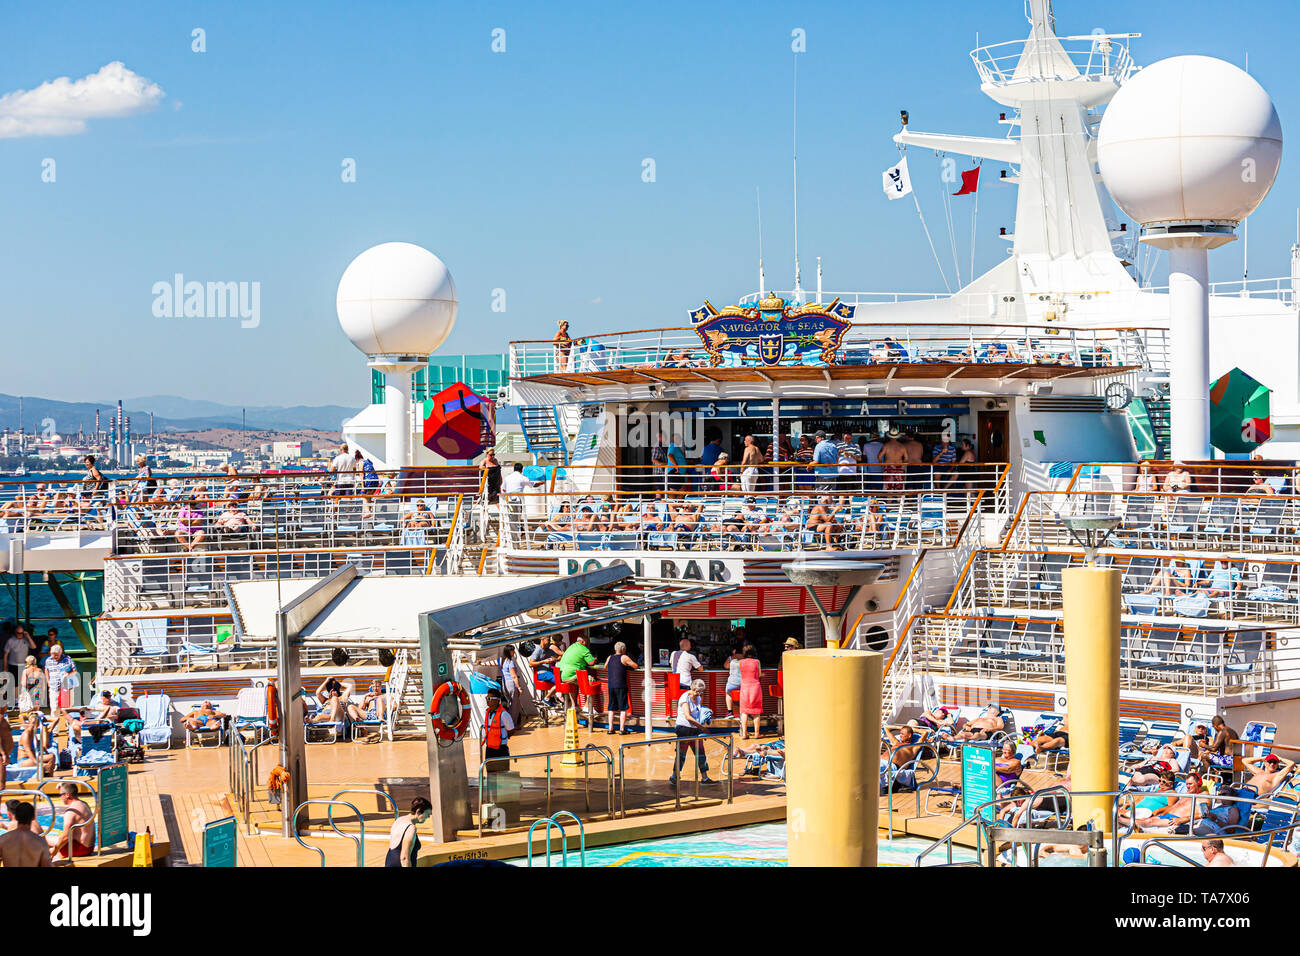 MIAMI, FLORIDA: September 21, 2016: Royal Caribbean was founded in Norway, but is now headquartered in Miami. They operate over 25 ships and sails aro - Stock Image